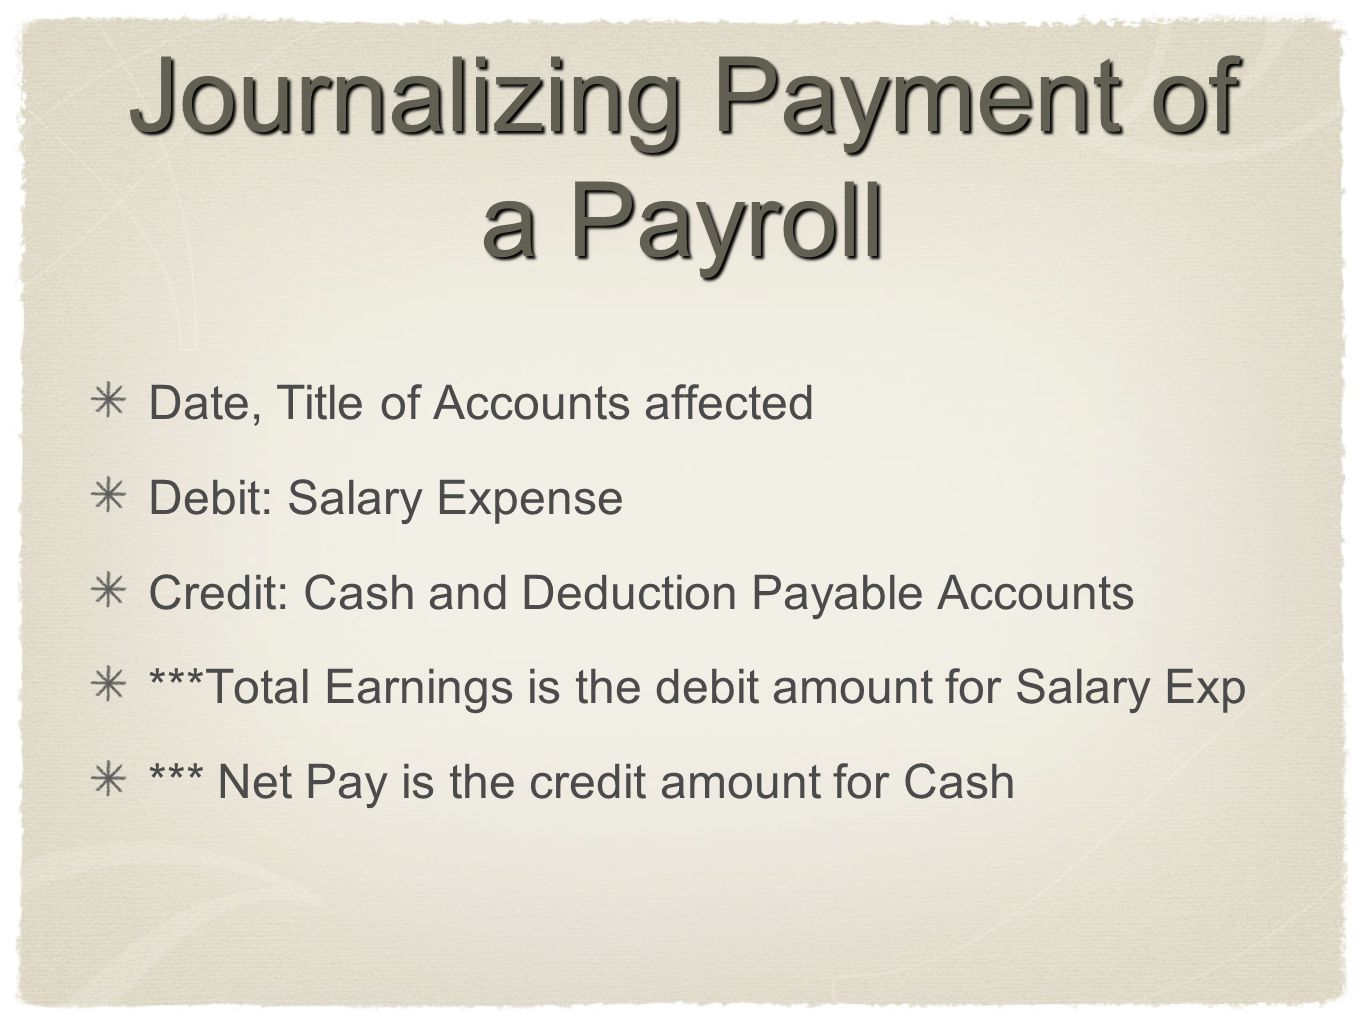 Journalizing Payment of a Payroll